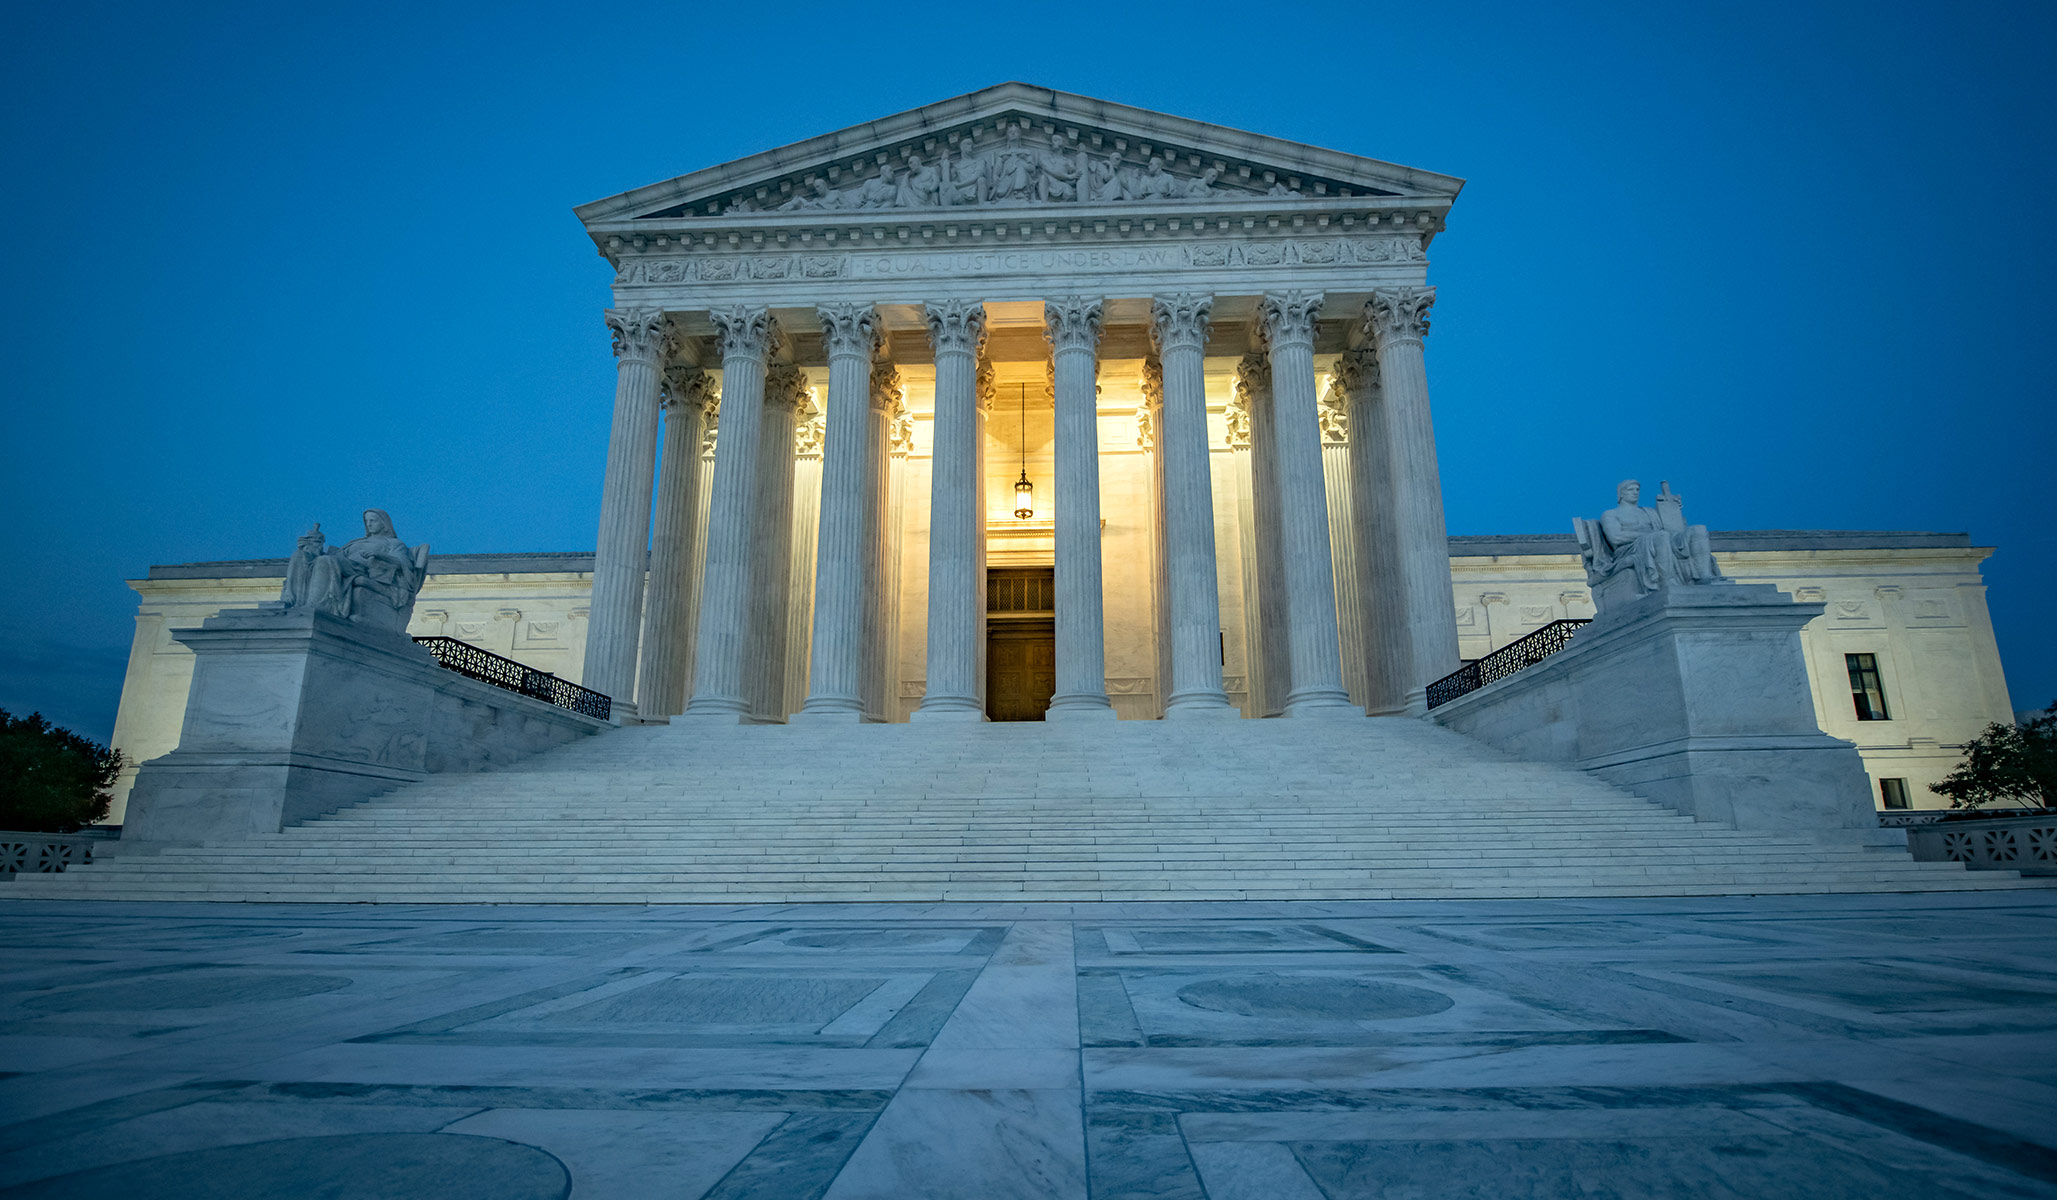 Supreme Court: Abortion, Gun Rights, Religious Liberty among Cases in New Term